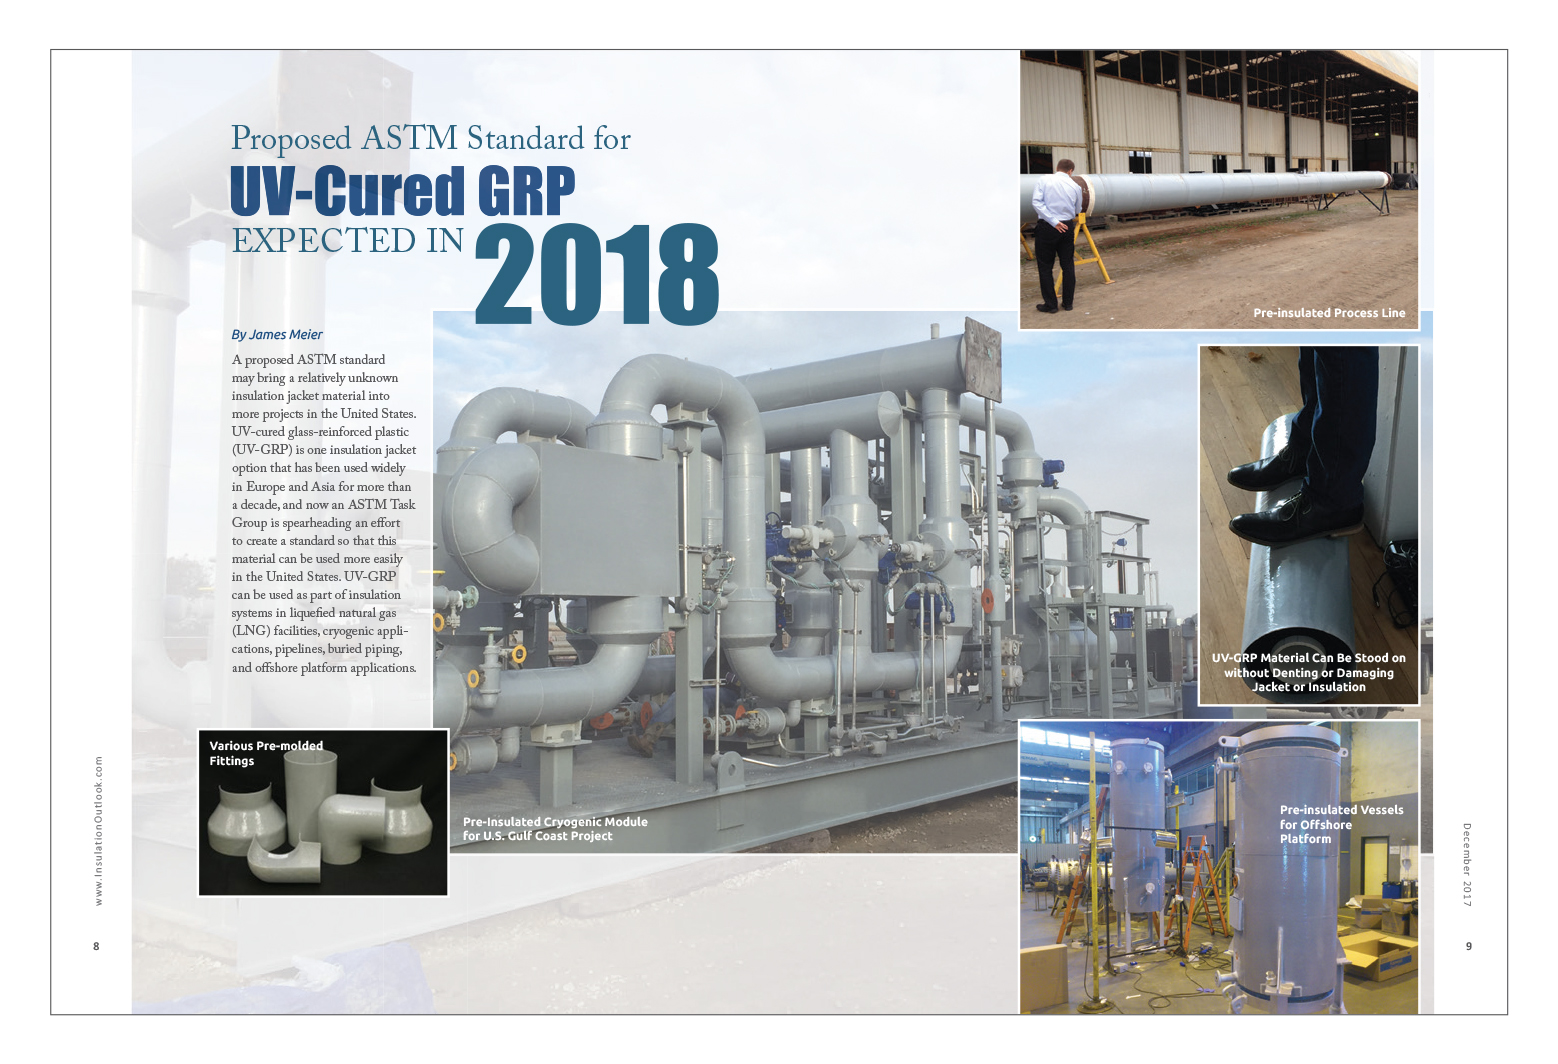 Proposed ASTM Standard for UV-Cured GRP Expected in 2018